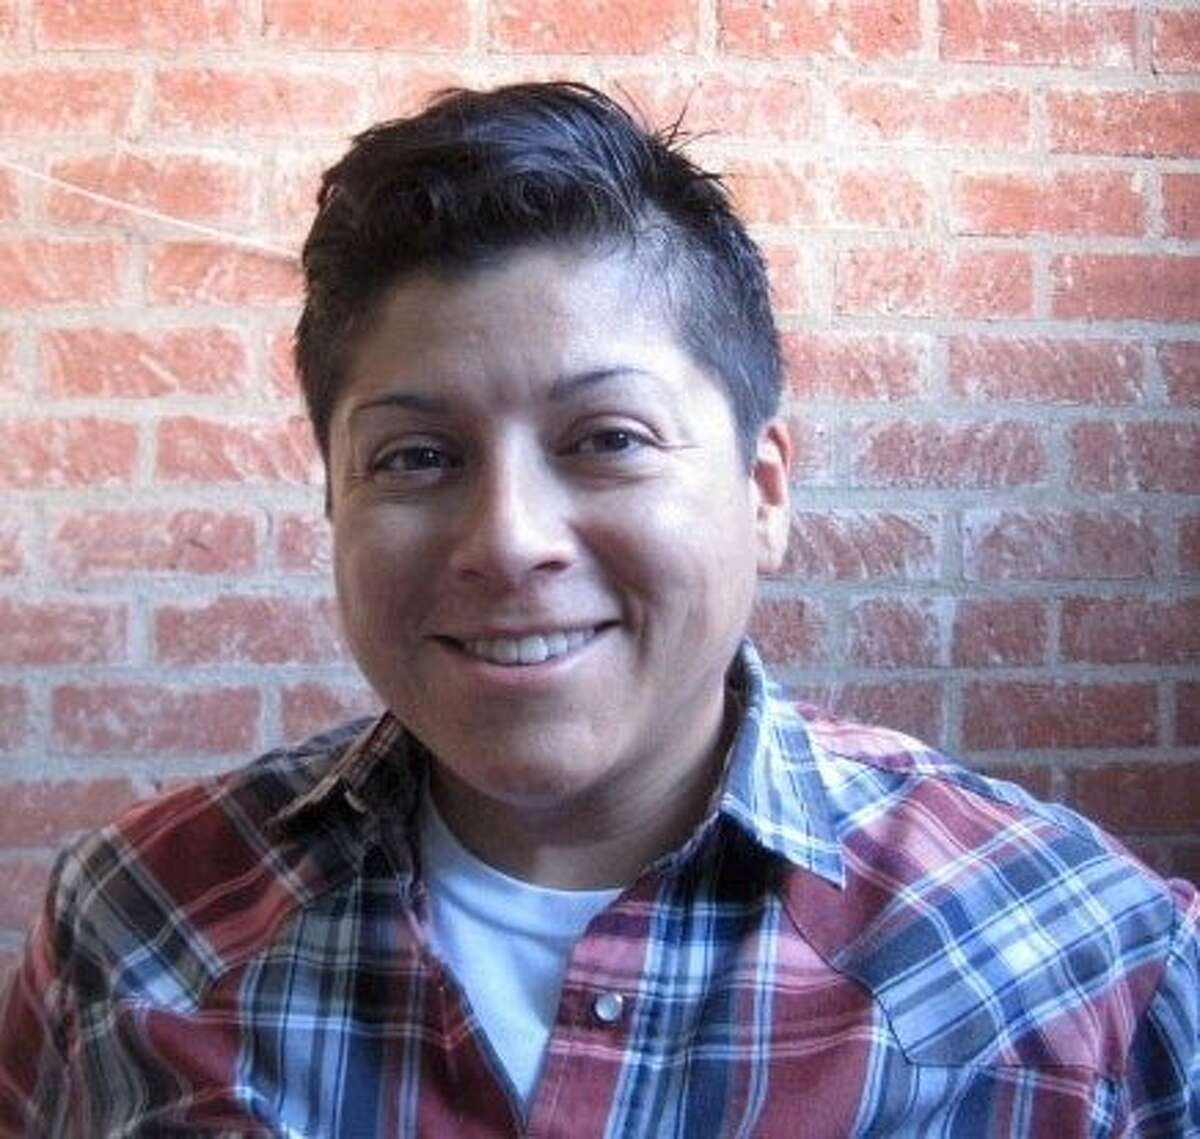 Raquel Gutierrez is among the performers at Friday's Hear Me Now event.